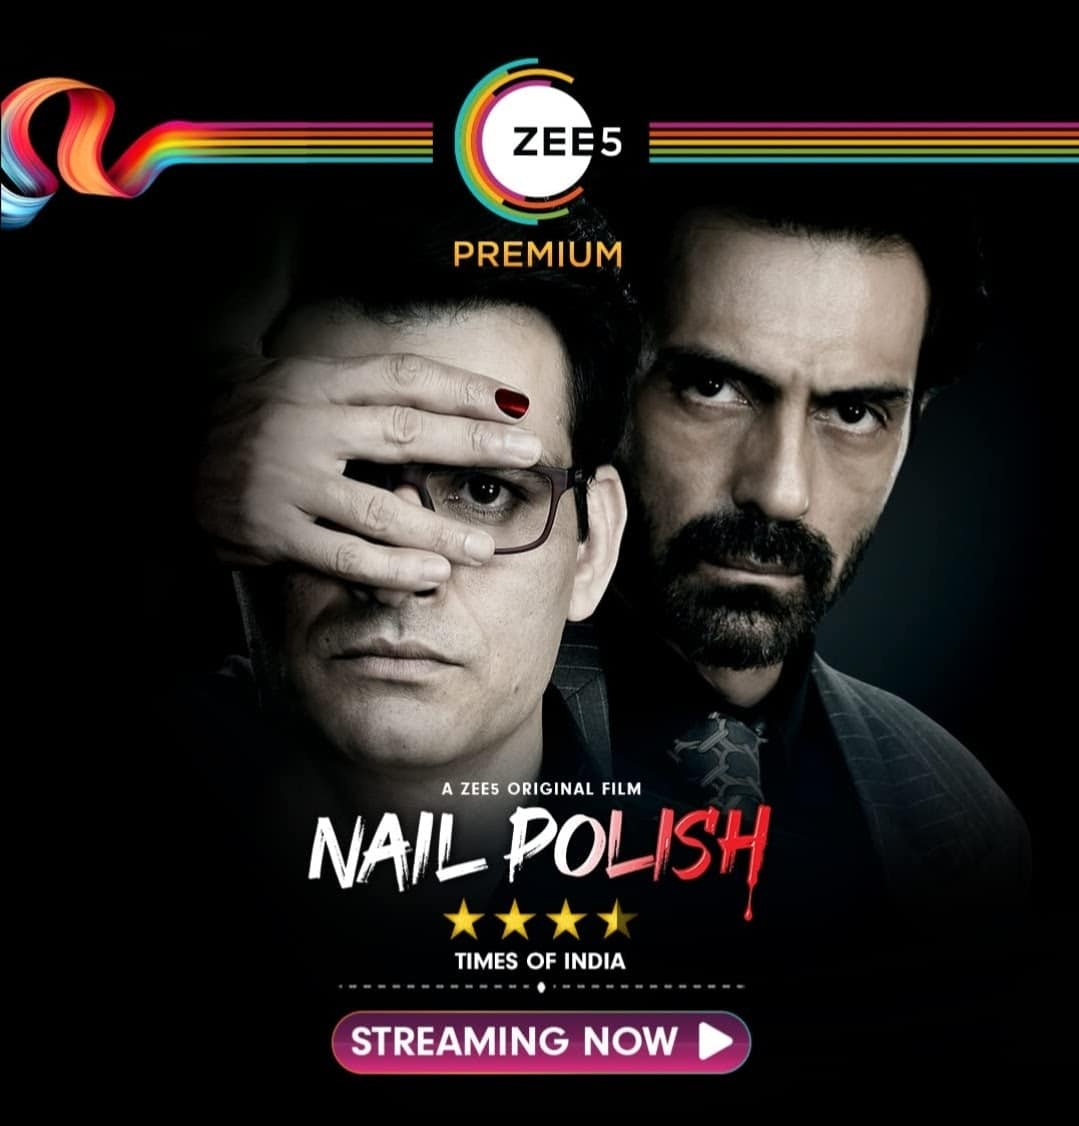 Nail Polish Full Movie Leaked Online by Filmyzilla